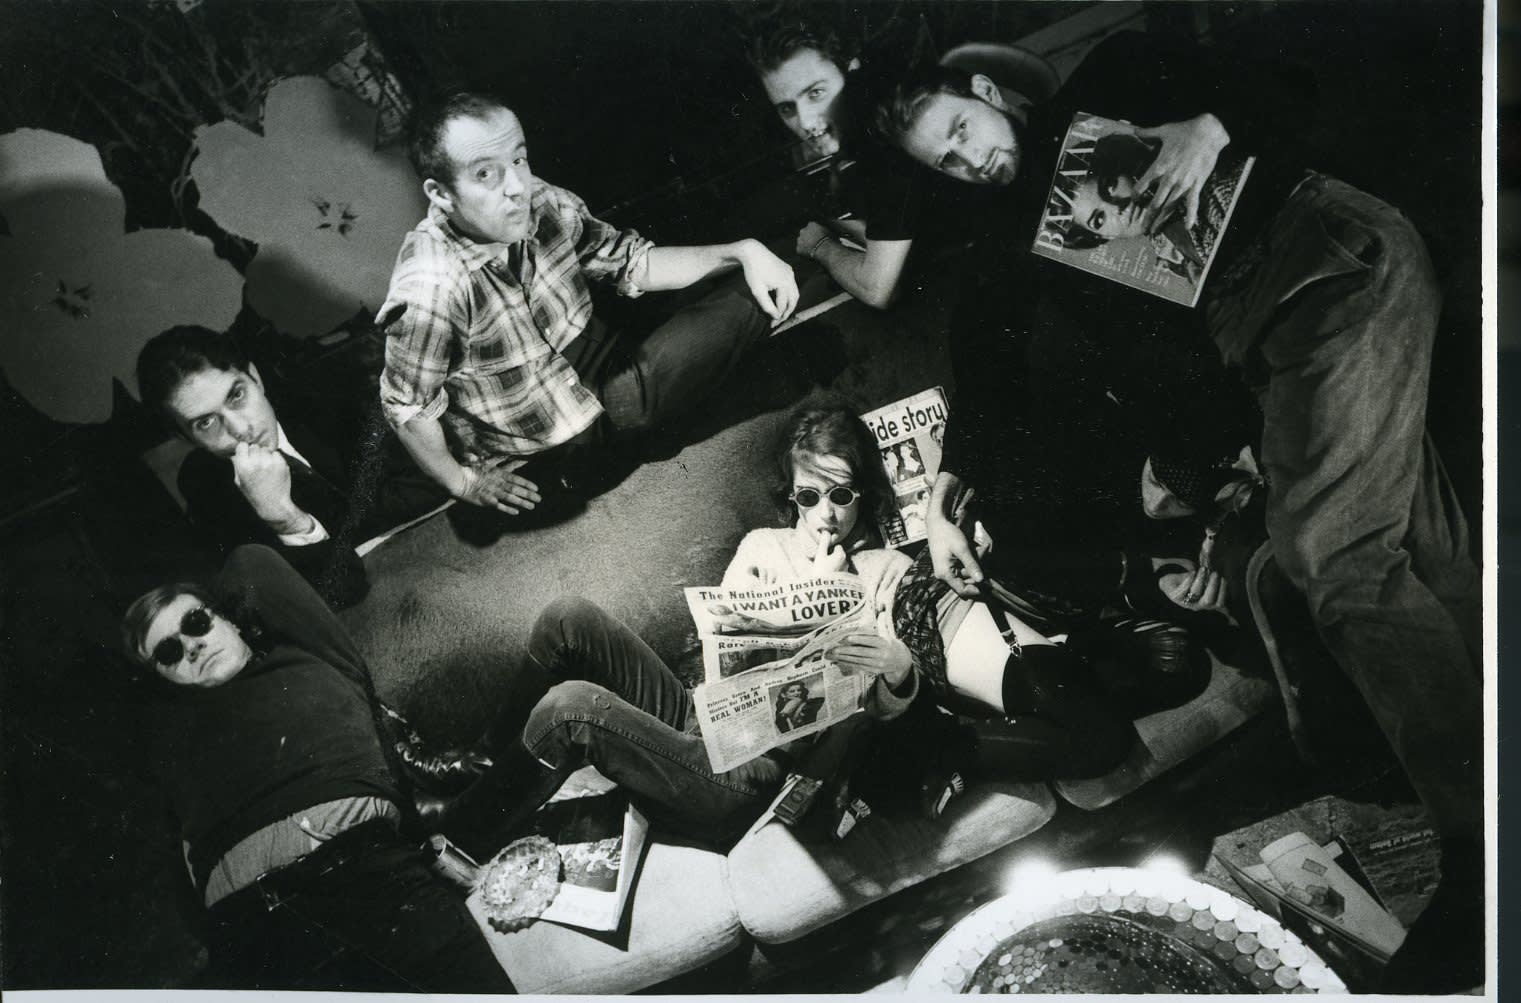 Dennis Hopper Andy Warhol and Members of The Factory (Gregory Markopoulos, Taylor Mead, Gerard Malanga, Jack Smith), 1963